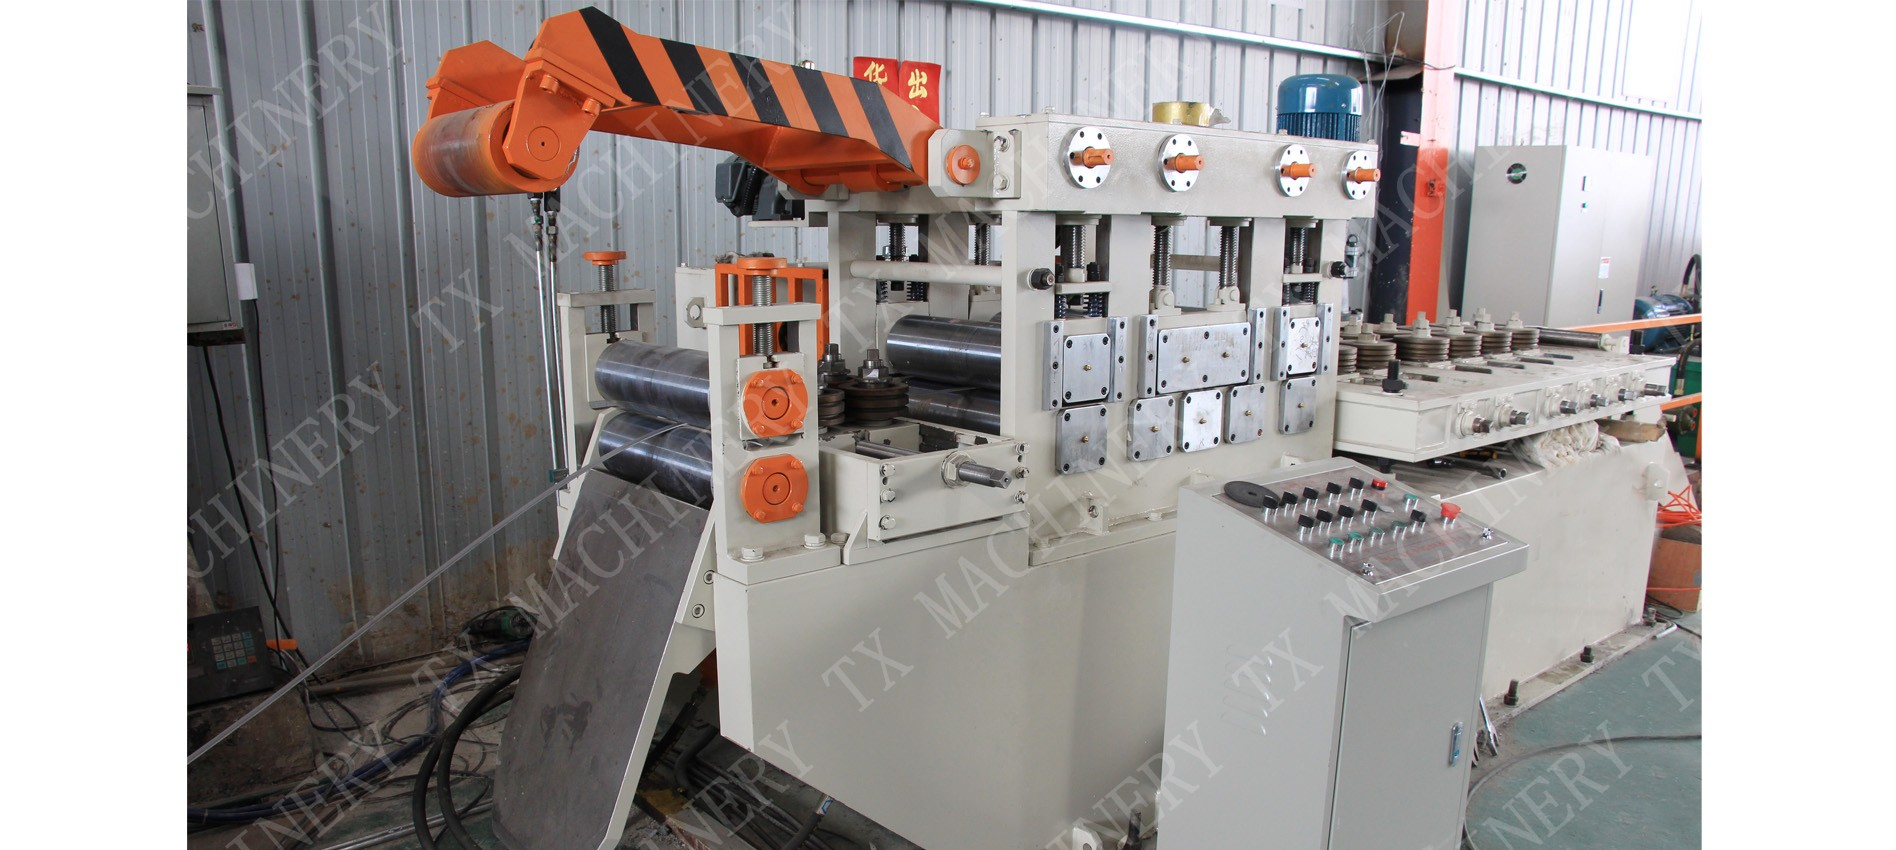 Metal Processing Machine With The Stainless Steel Sheet Coil Flat Bar Cut To Length And Leveling